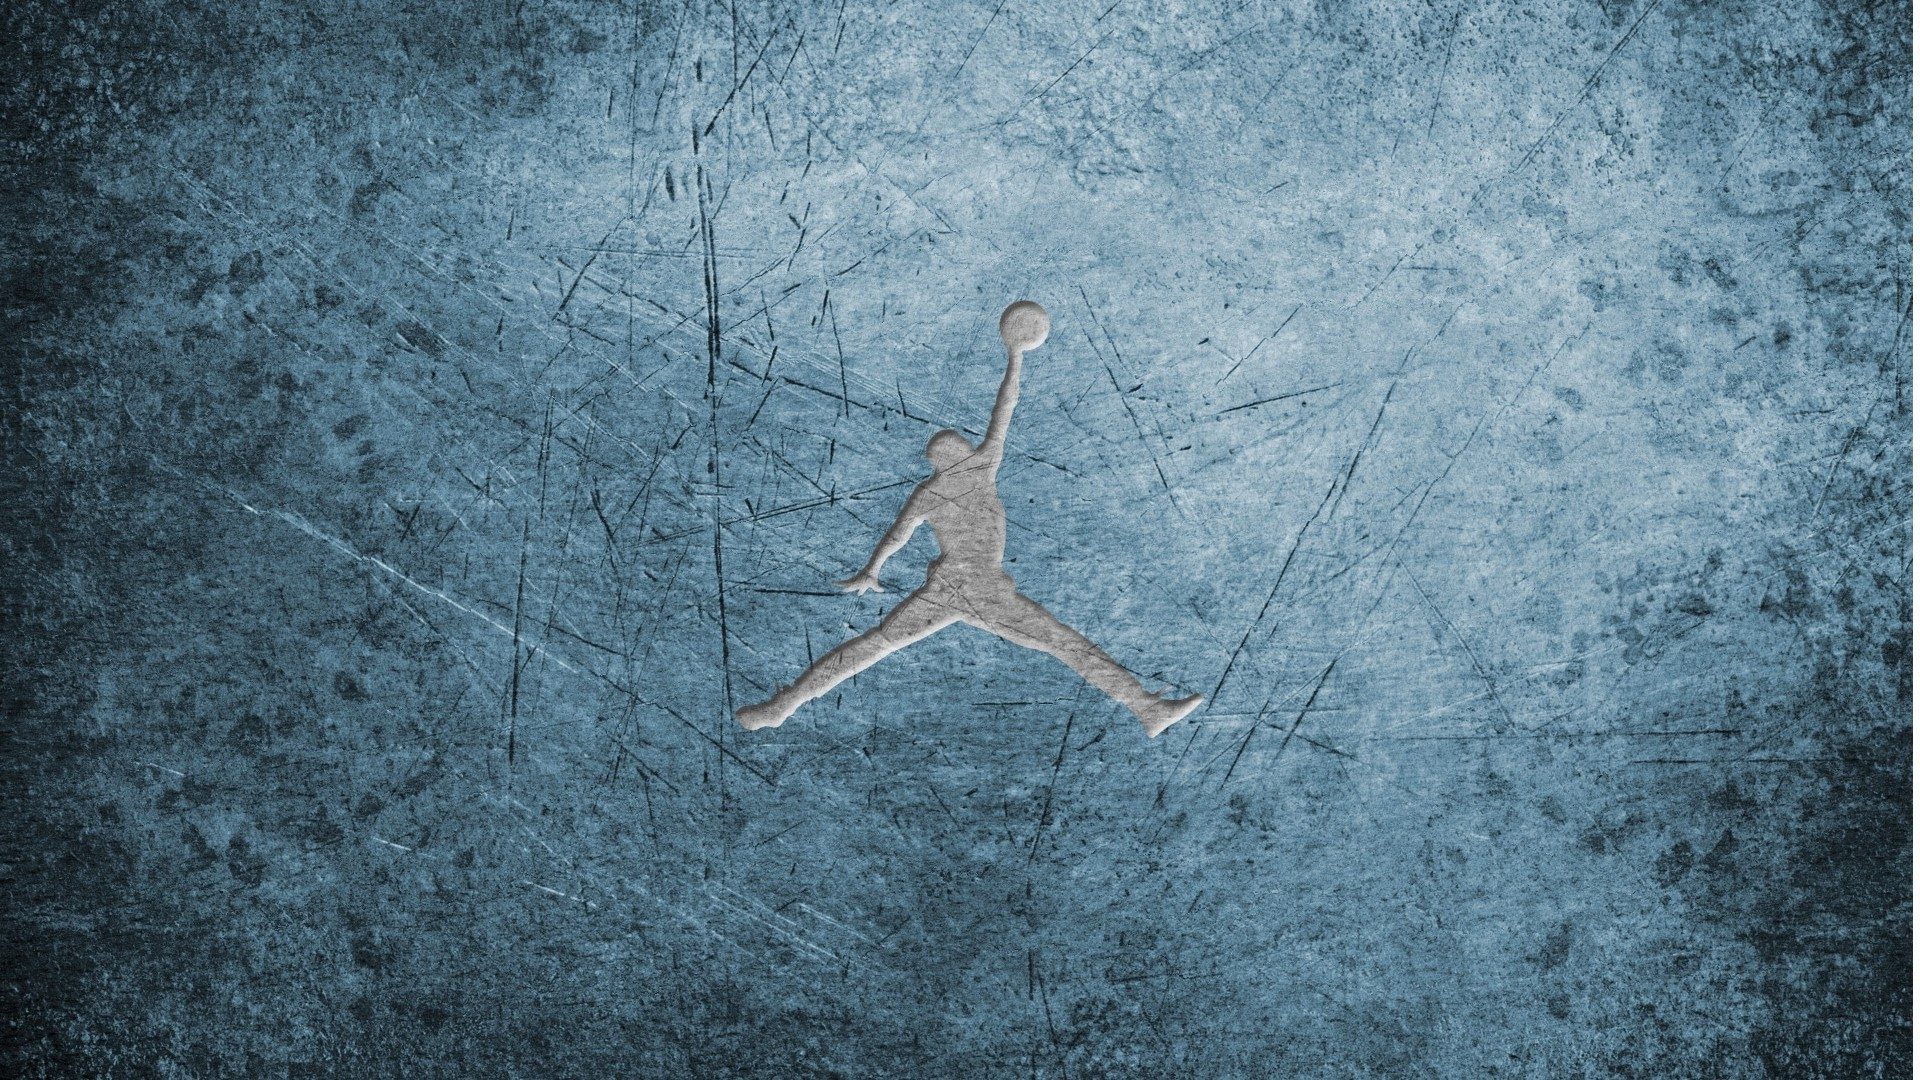 jumpman wallpaper for android